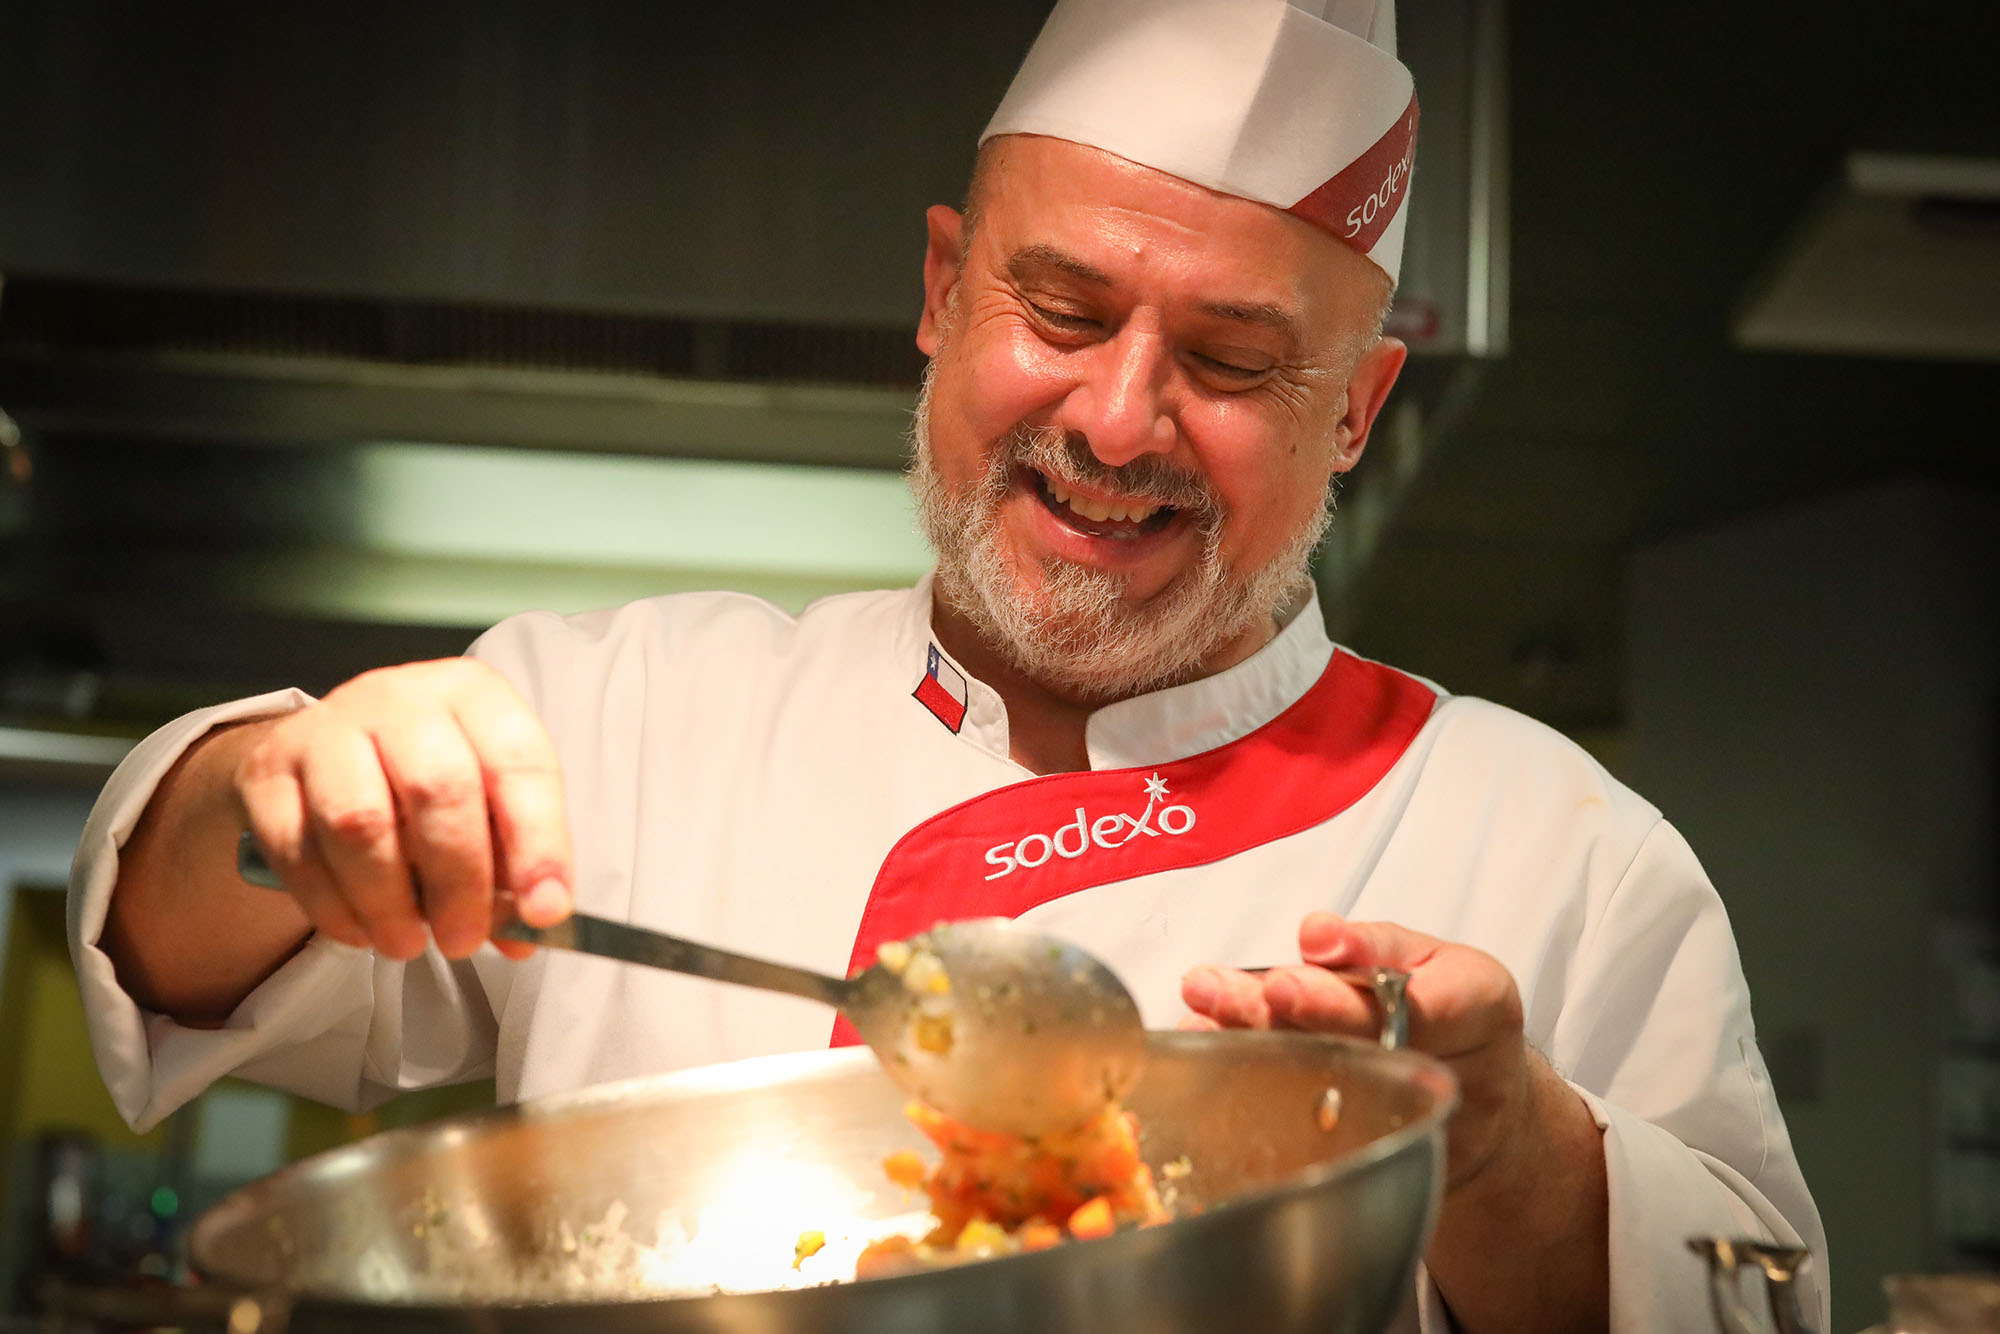 Francisco Layera, an executive chef with Sodexo Chile, prepares a dish from his home country to serve Monday evening at The Market @ 27th on the UNK campus. Layera cooked for UNK students, staff and faculty as part of Sodexo's Global Chef Program. (Photos by Corbey R. Dorsey, UNK Communications)